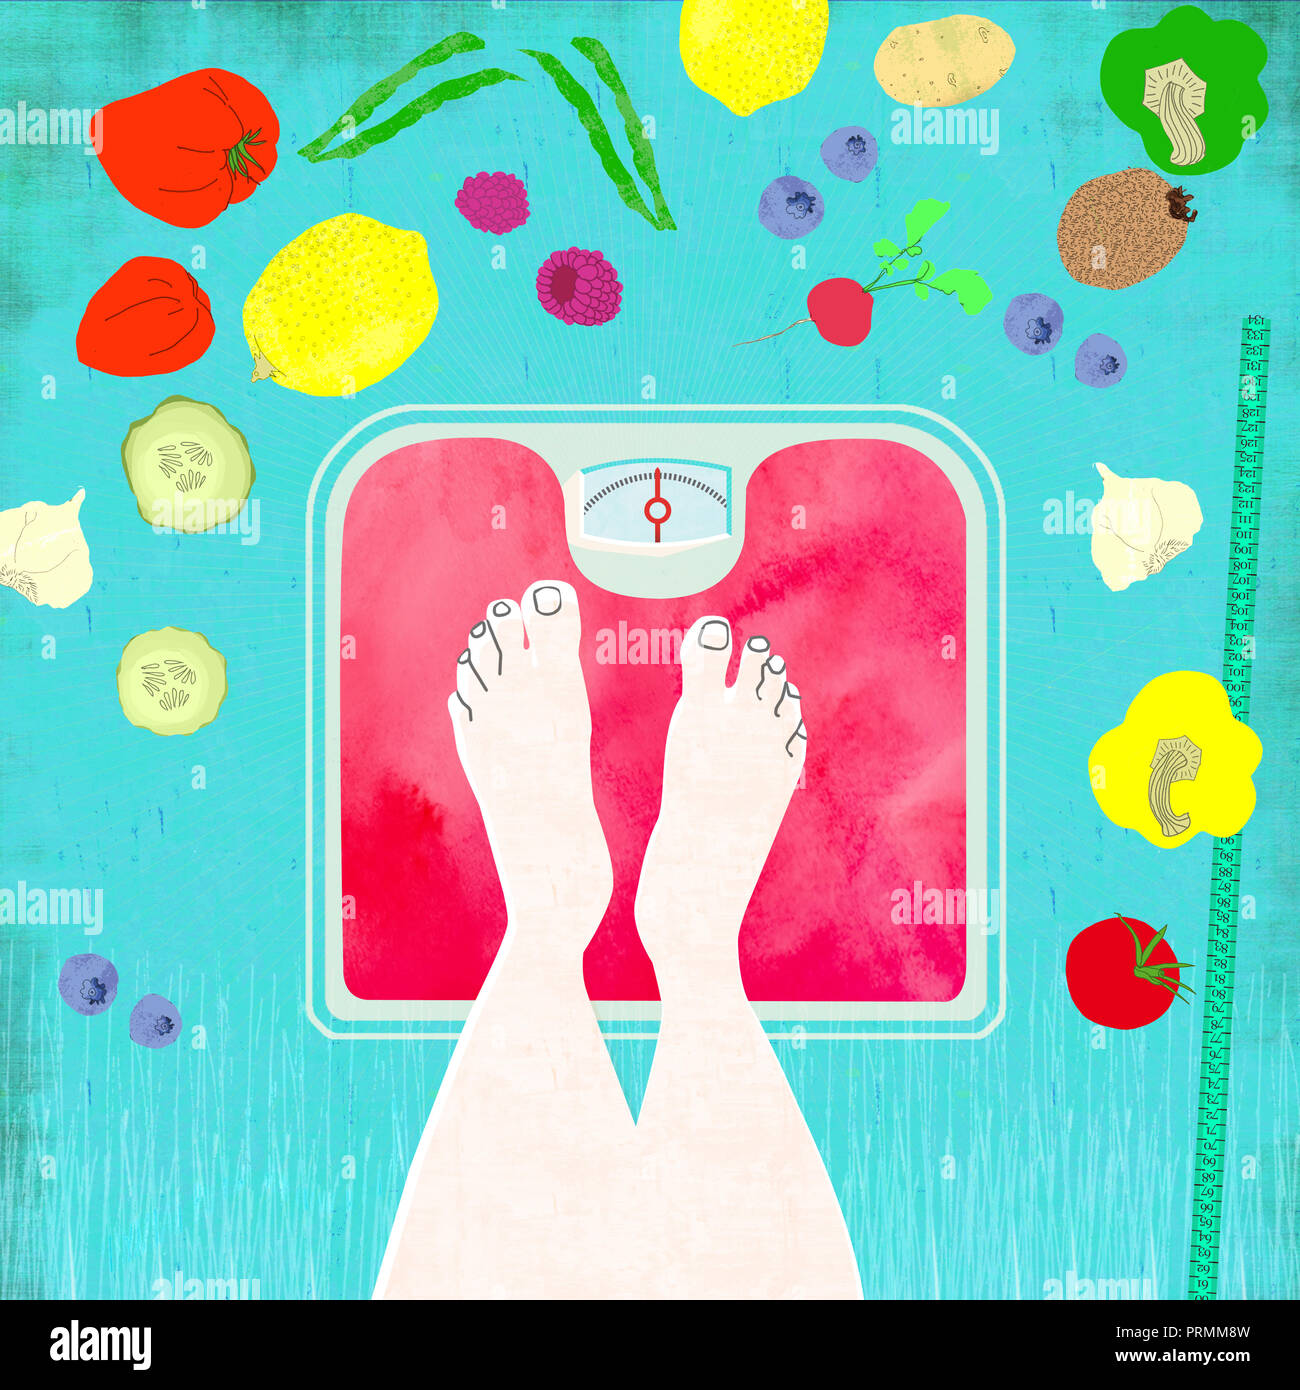 feet on scales with a healthy diet - Stock Image